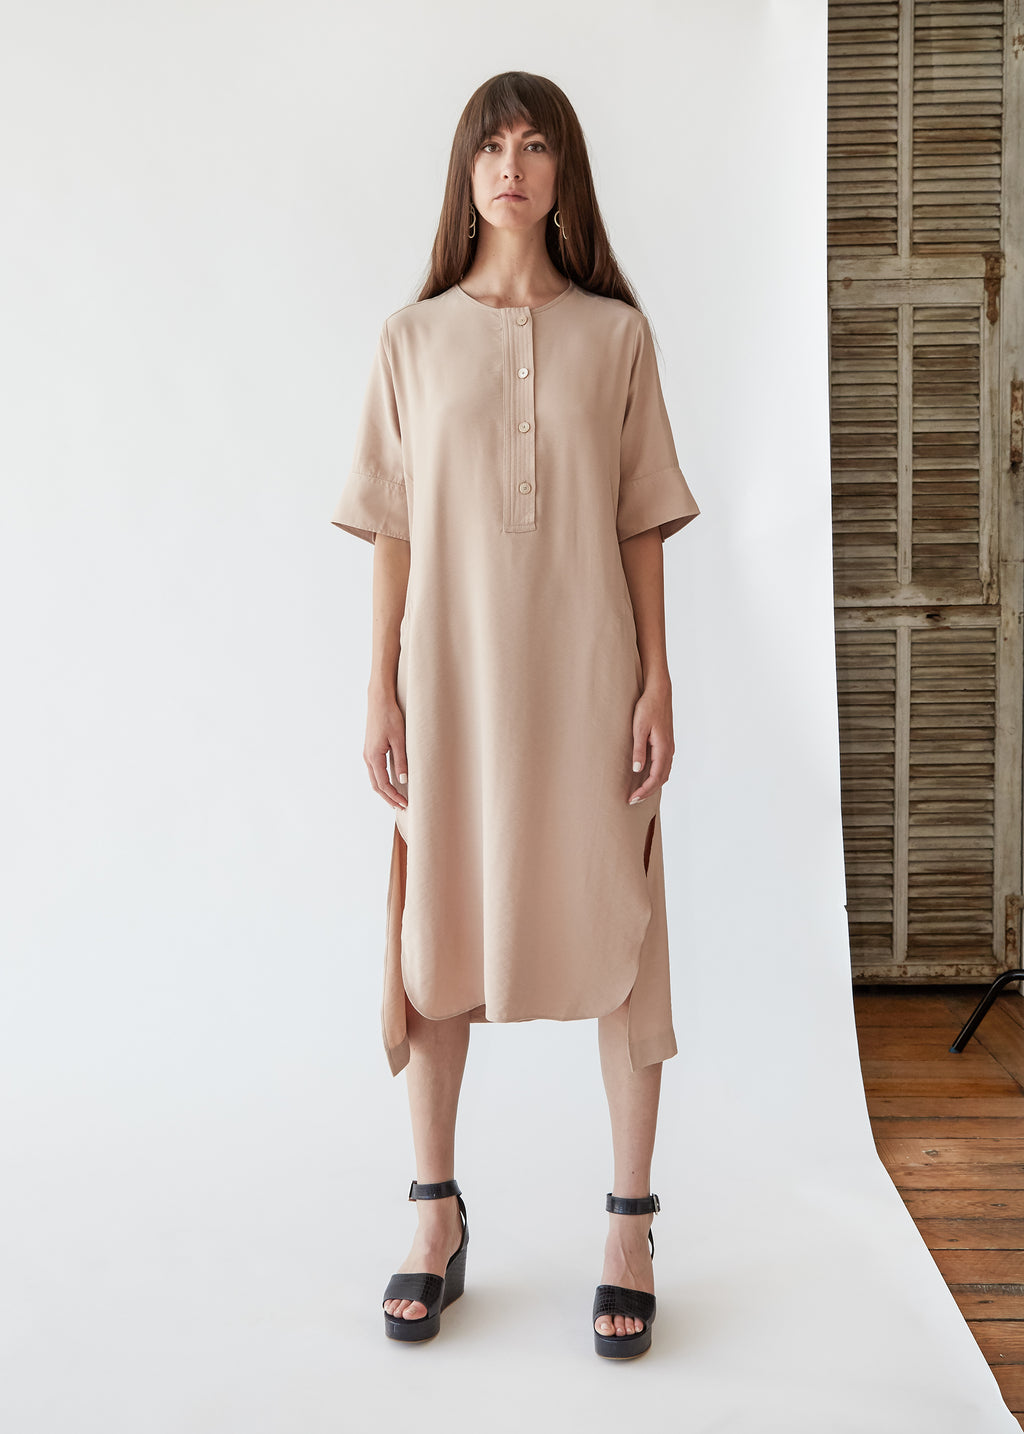 Row Dress in Pink Sand